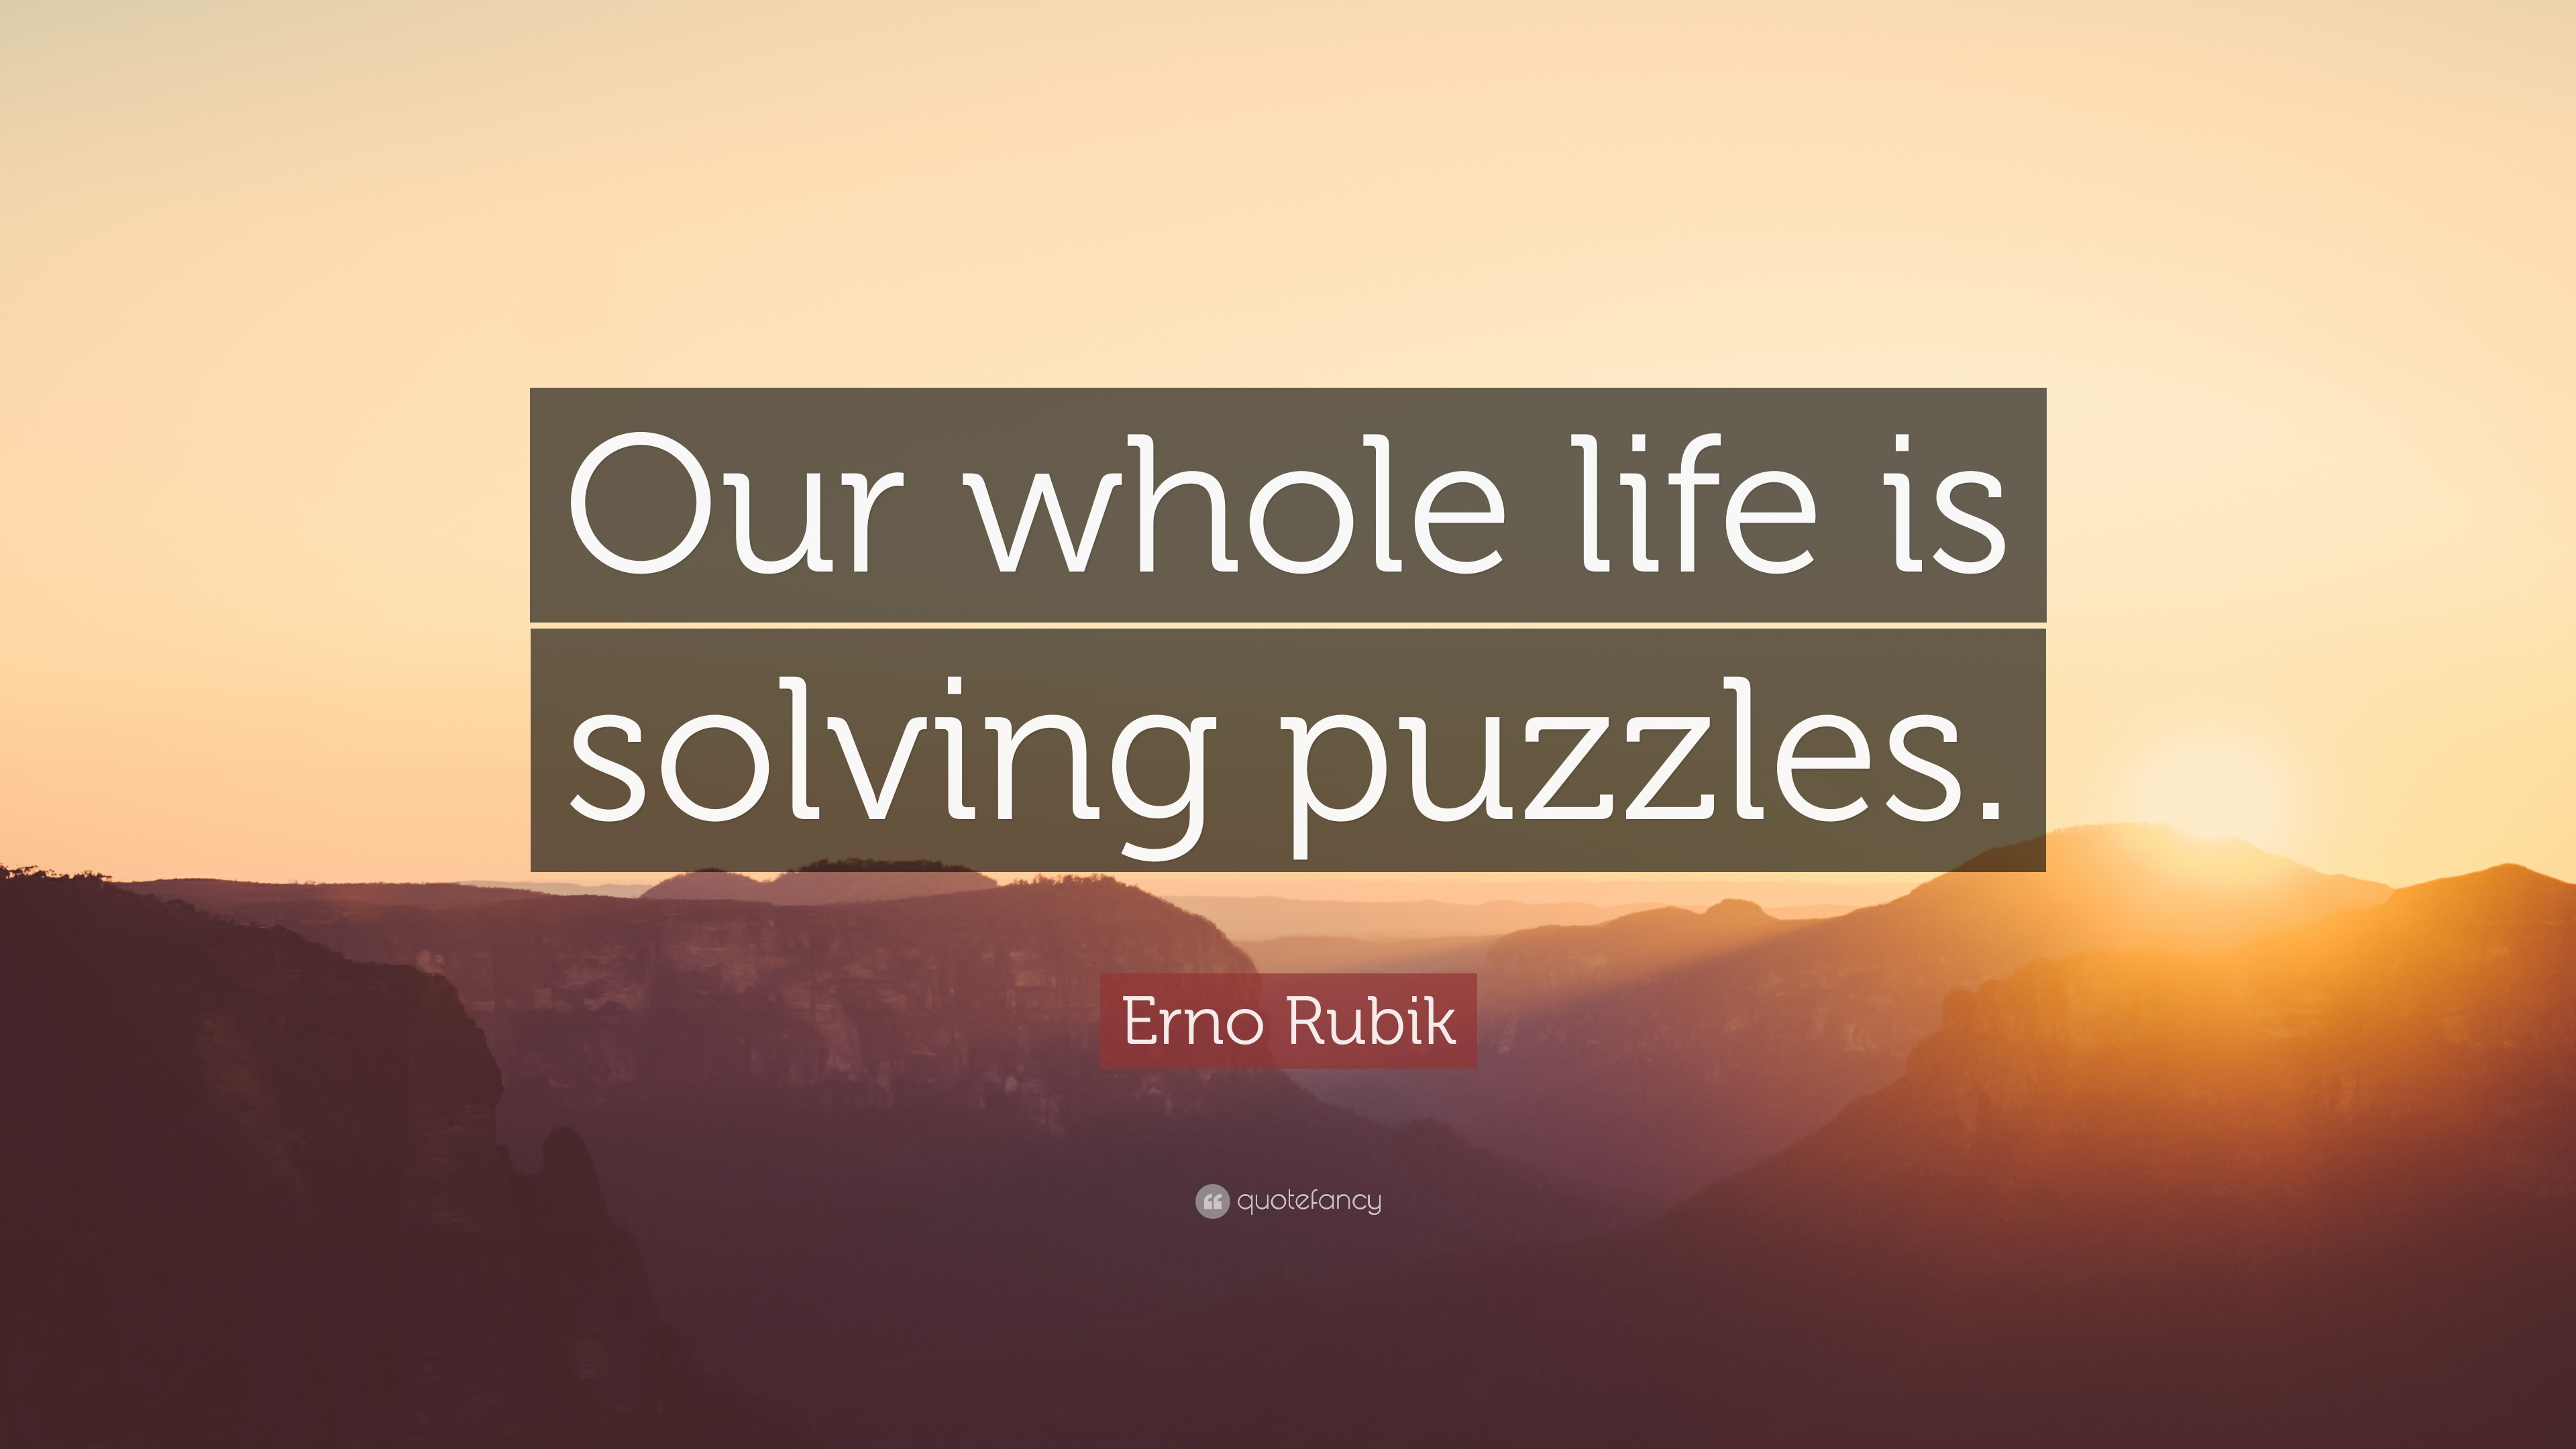 Erno Rubik Quote: U201cOur Whole Life Is Solving Puzzles.u201d